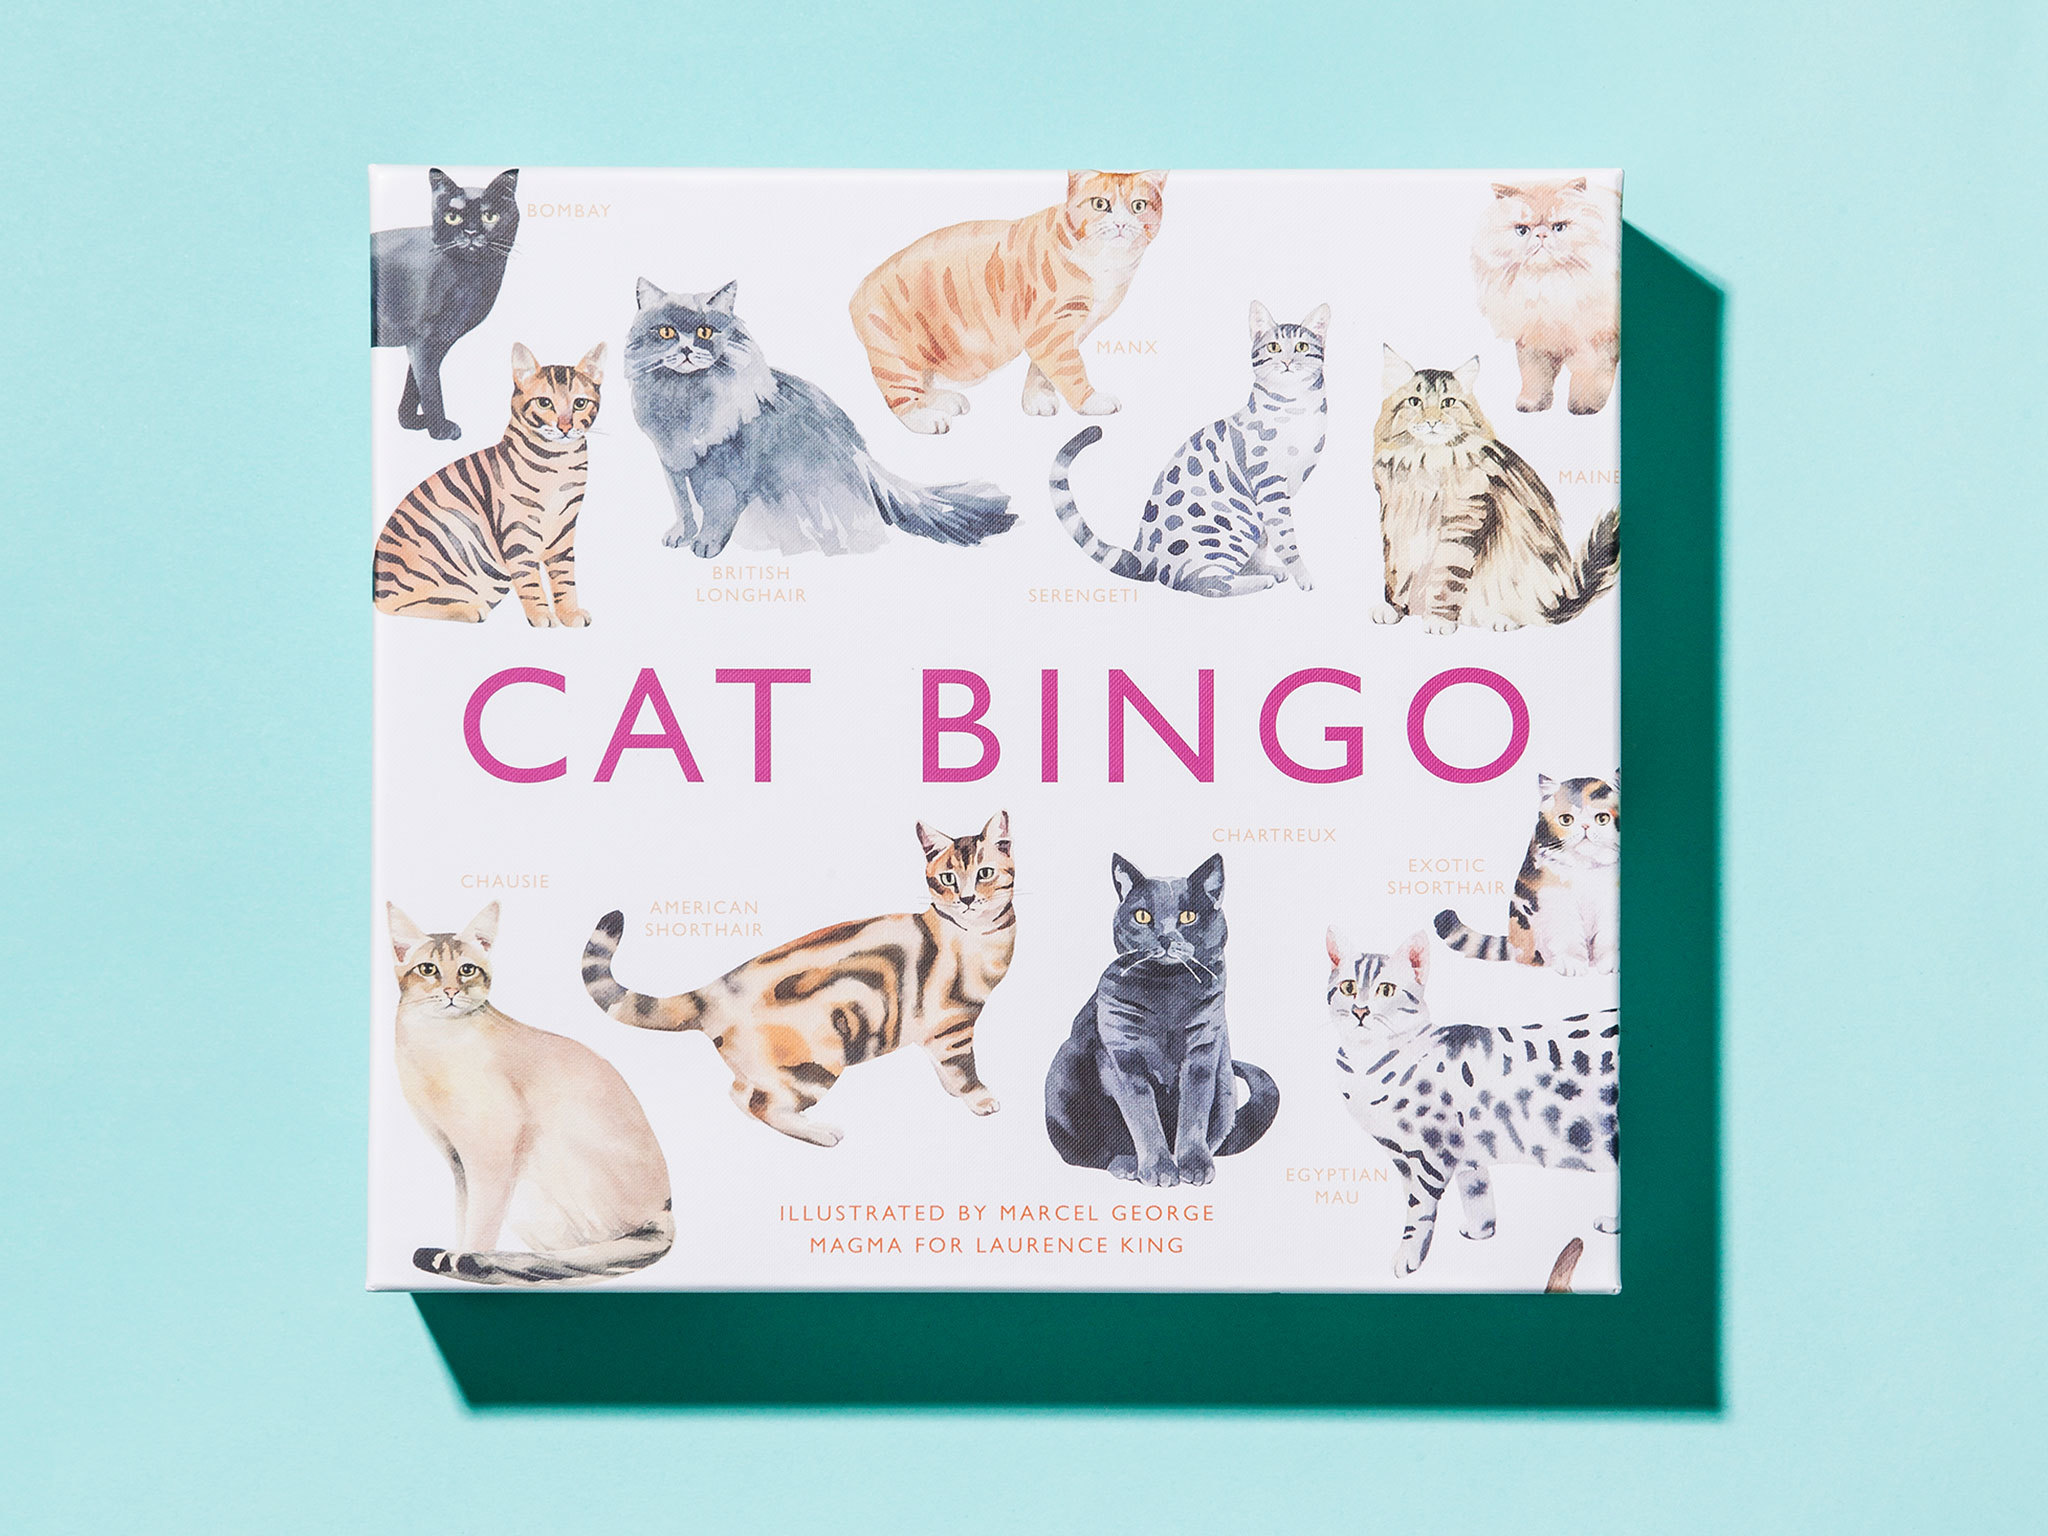 Christmas gift guide: home - Cat bingo